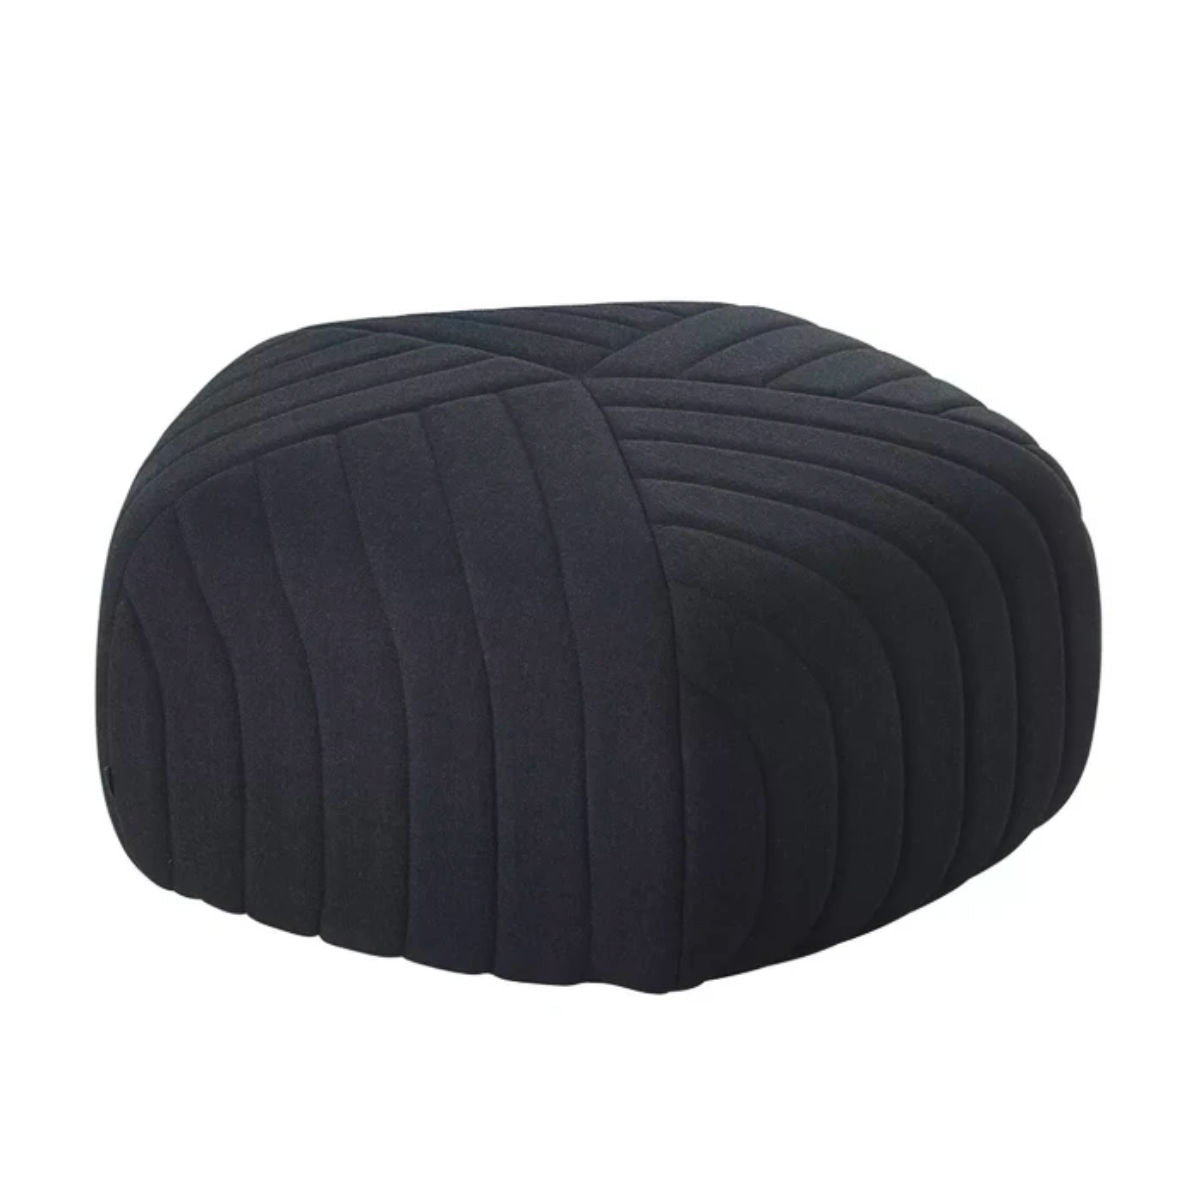 Muuto Five pouf, remix 183, dark grey